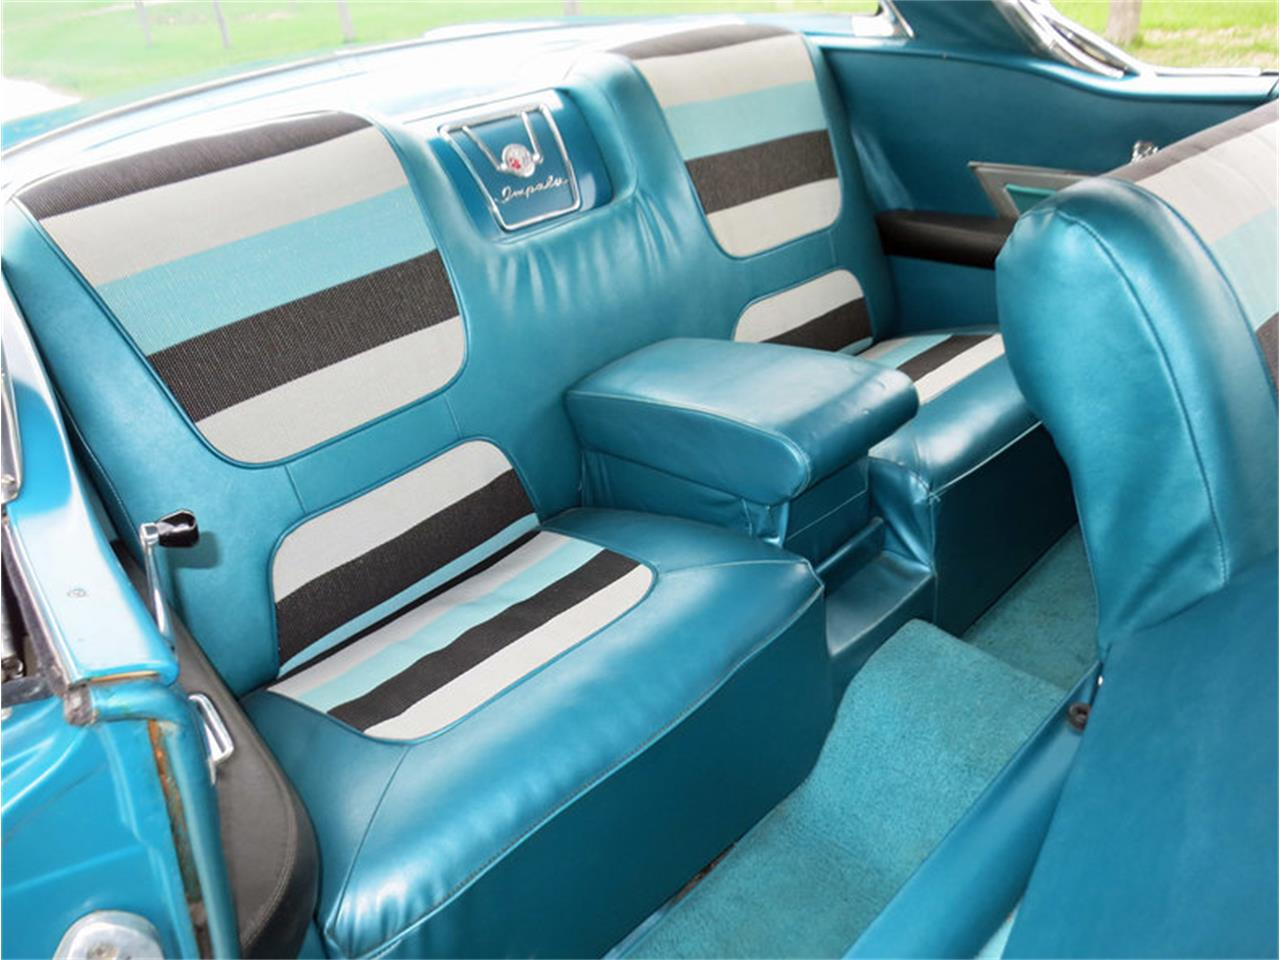 Large Picture of Classic '58 Chevrolet Impala located in West Chester Pennsylvania - $45,000.00 Offered by Connors Motorcar Company - LRM8